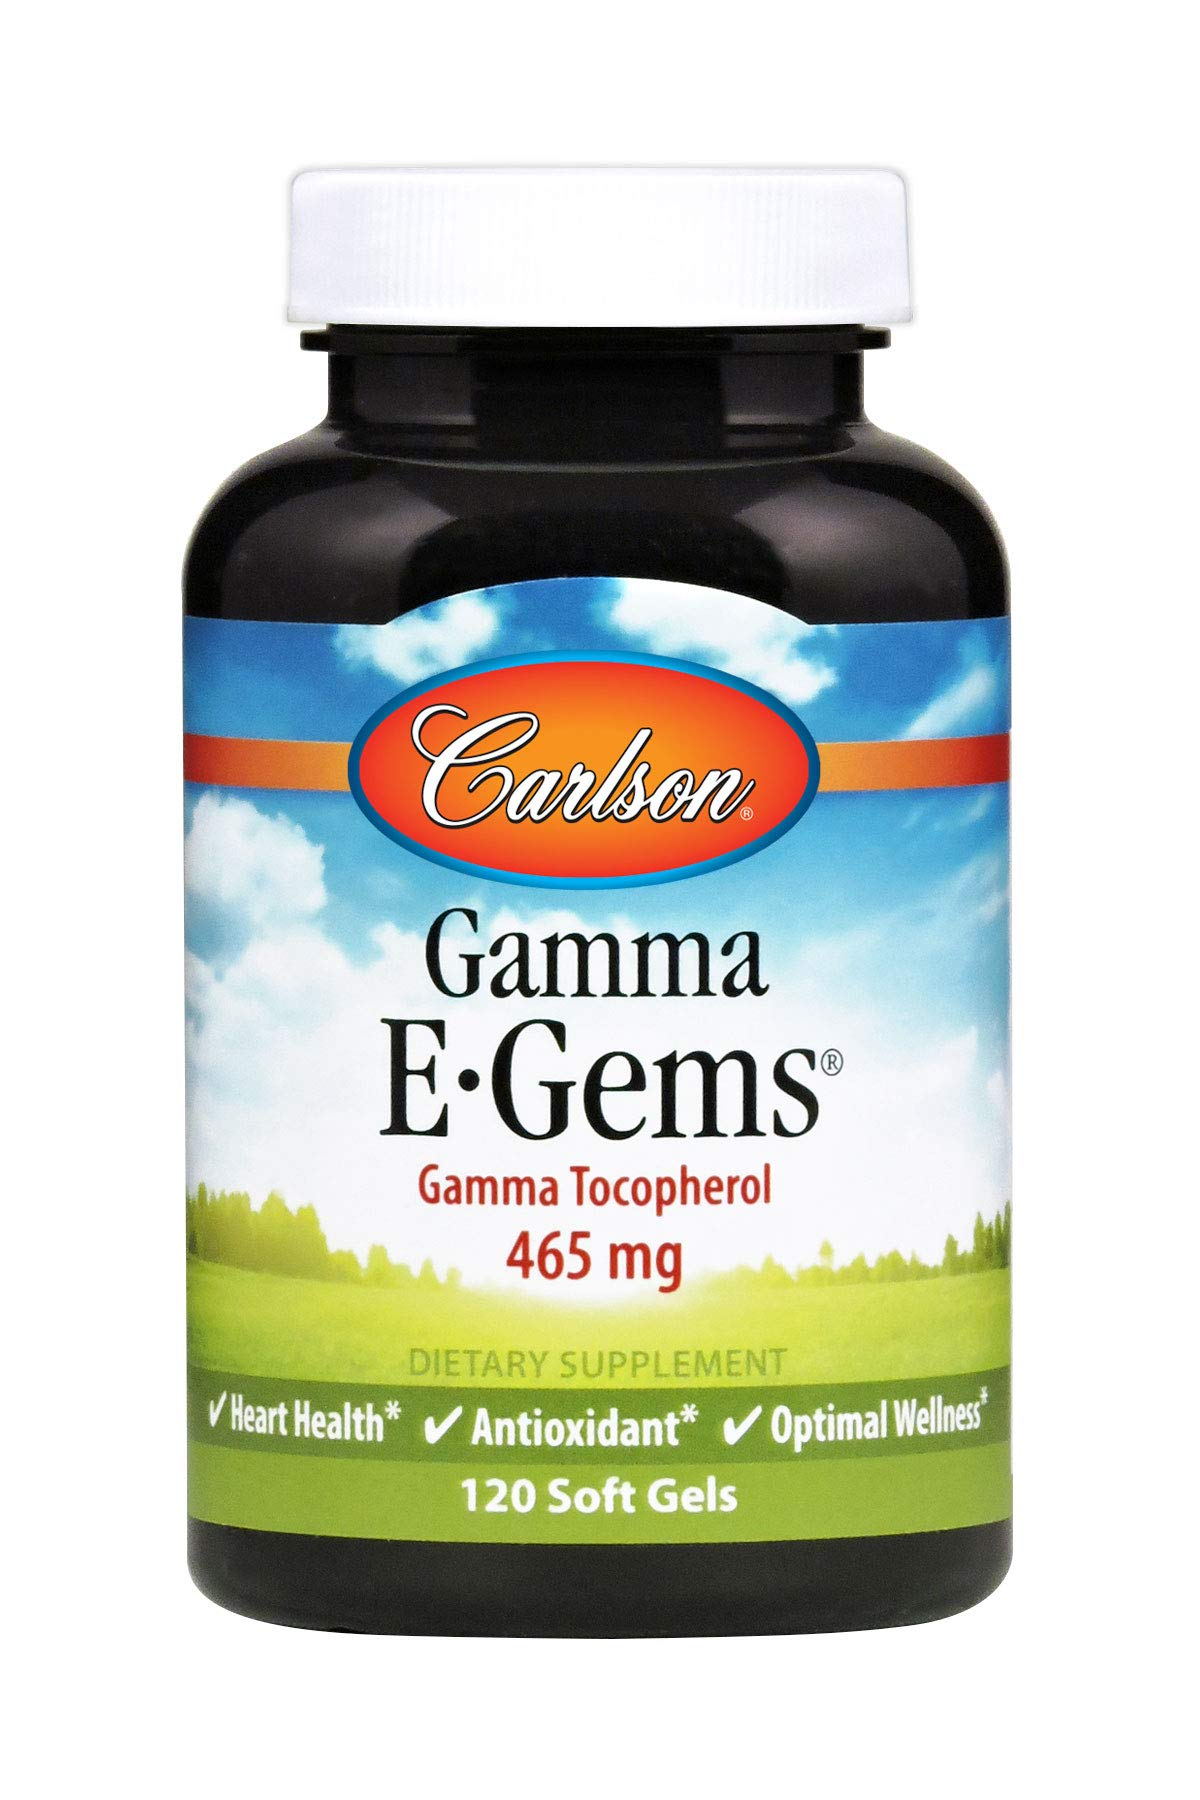 Carlson - Gamma E-Gems, Gamma Tocopherol 465 mg, Heart Health & Optimal Wellness, Antioxidant, 120 Soft gels by Carlson